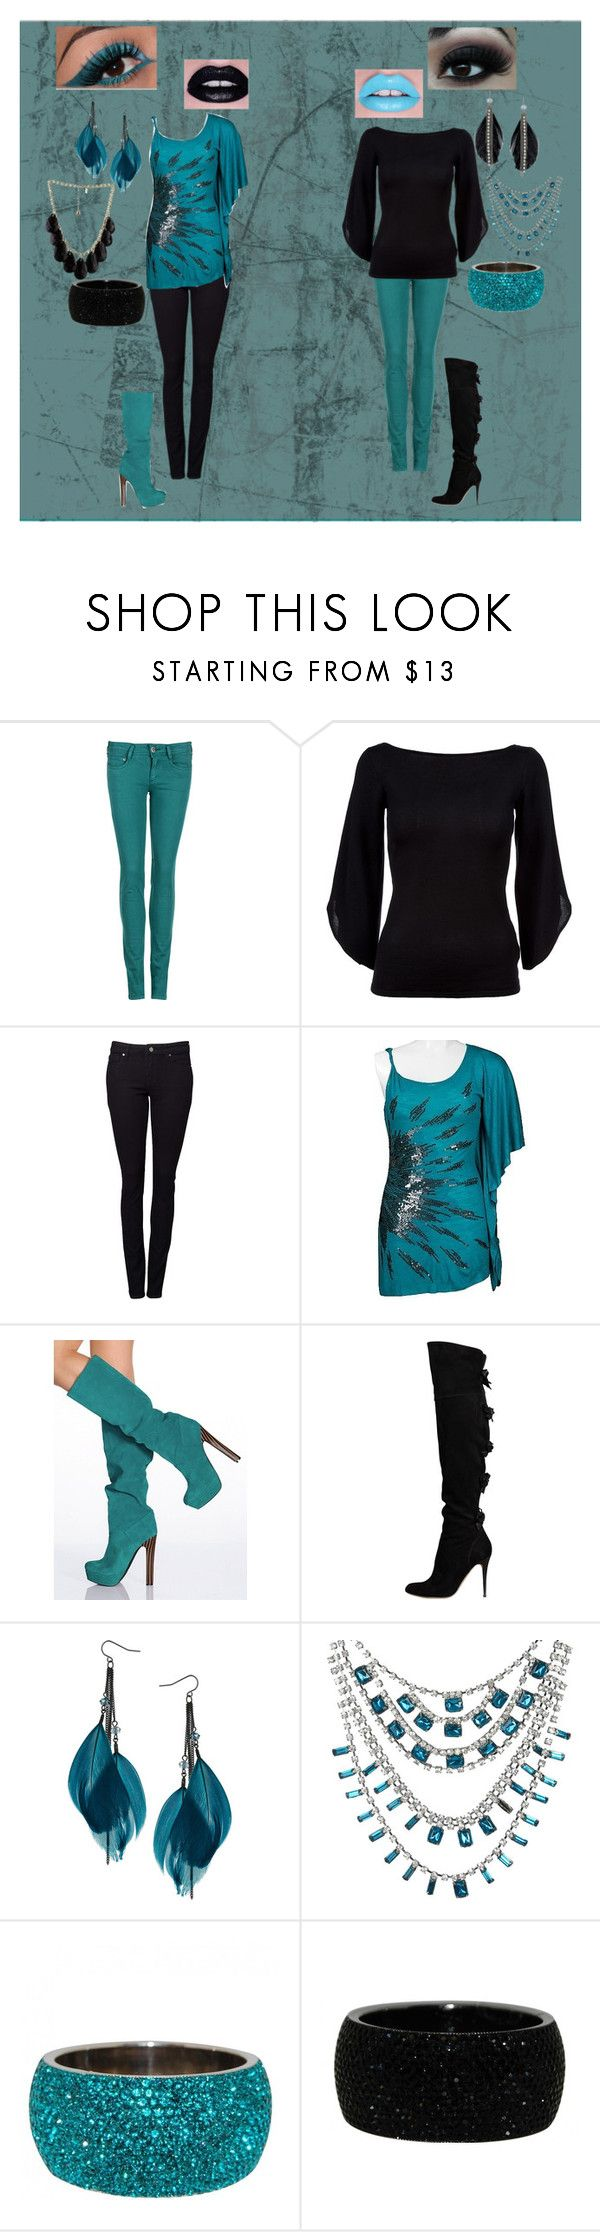 """""""black&teal"""" by faleur102 ❤ liked on Polyvore featuring CIMARRON, Ralph Lauren Black Label, Witchery, Miss Me, Victoria's Secret, Valentino, Dorothy Perkins, Lipsy, Kate Spade and Wet Seal"""